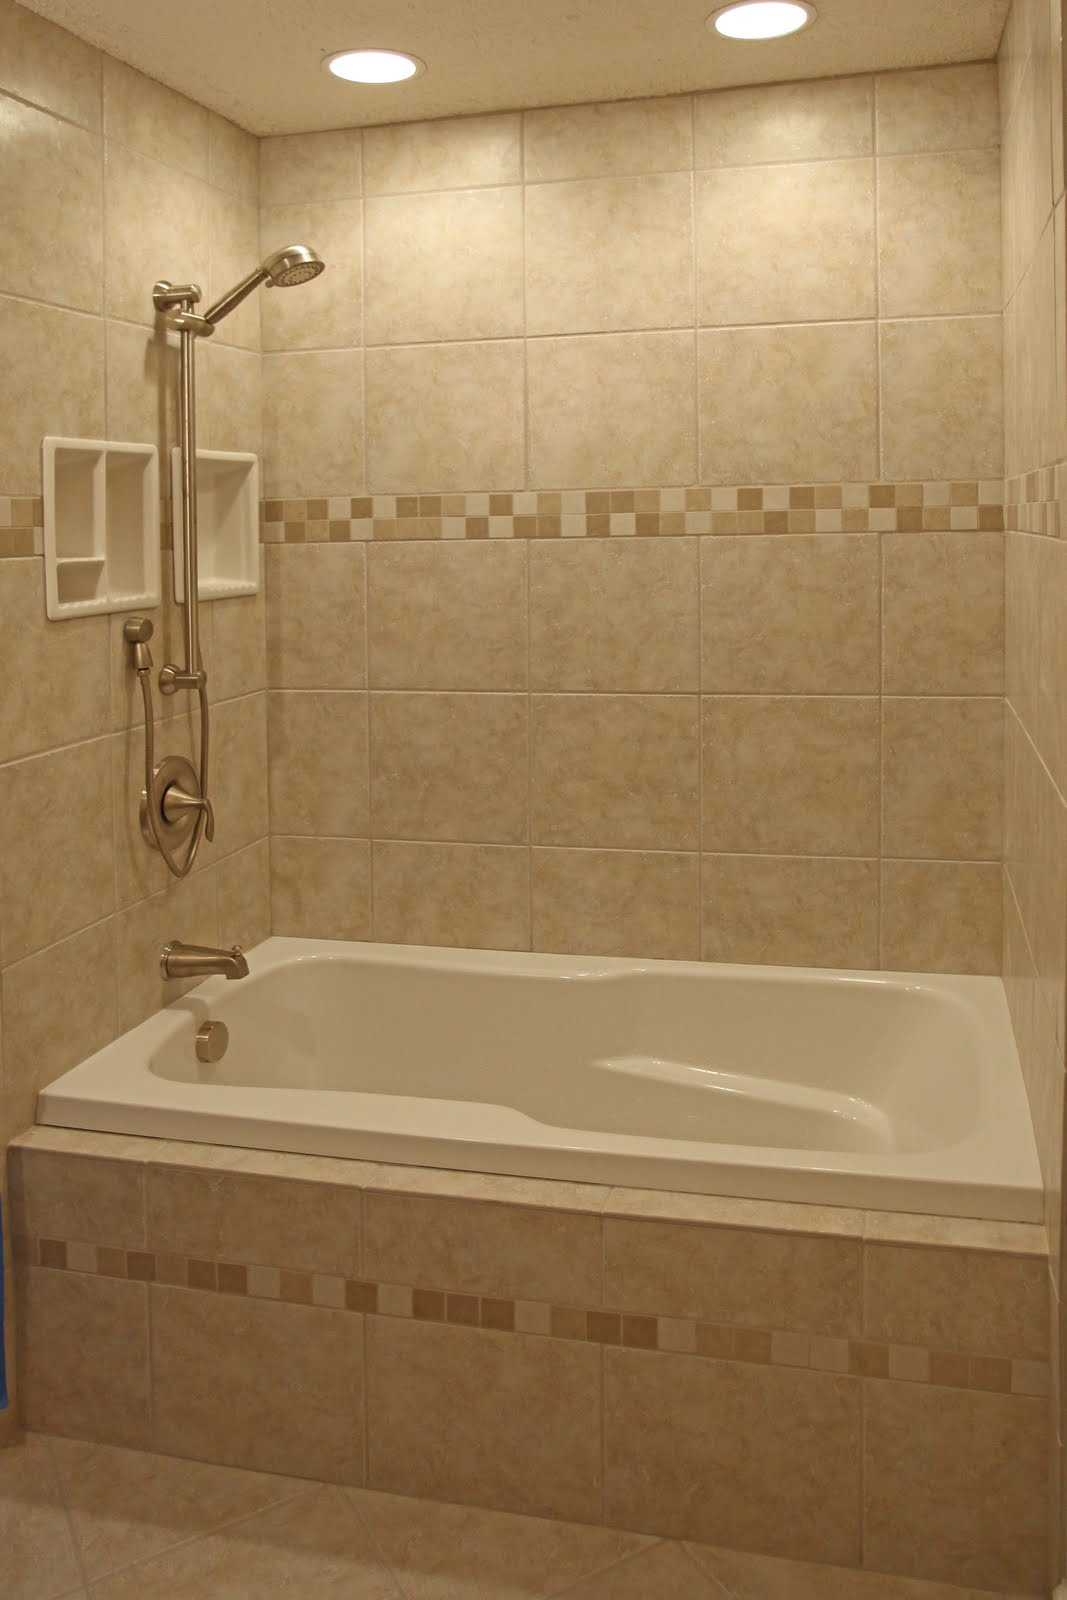 Excellent OutsidetheBox Bathroom Tile Ideas